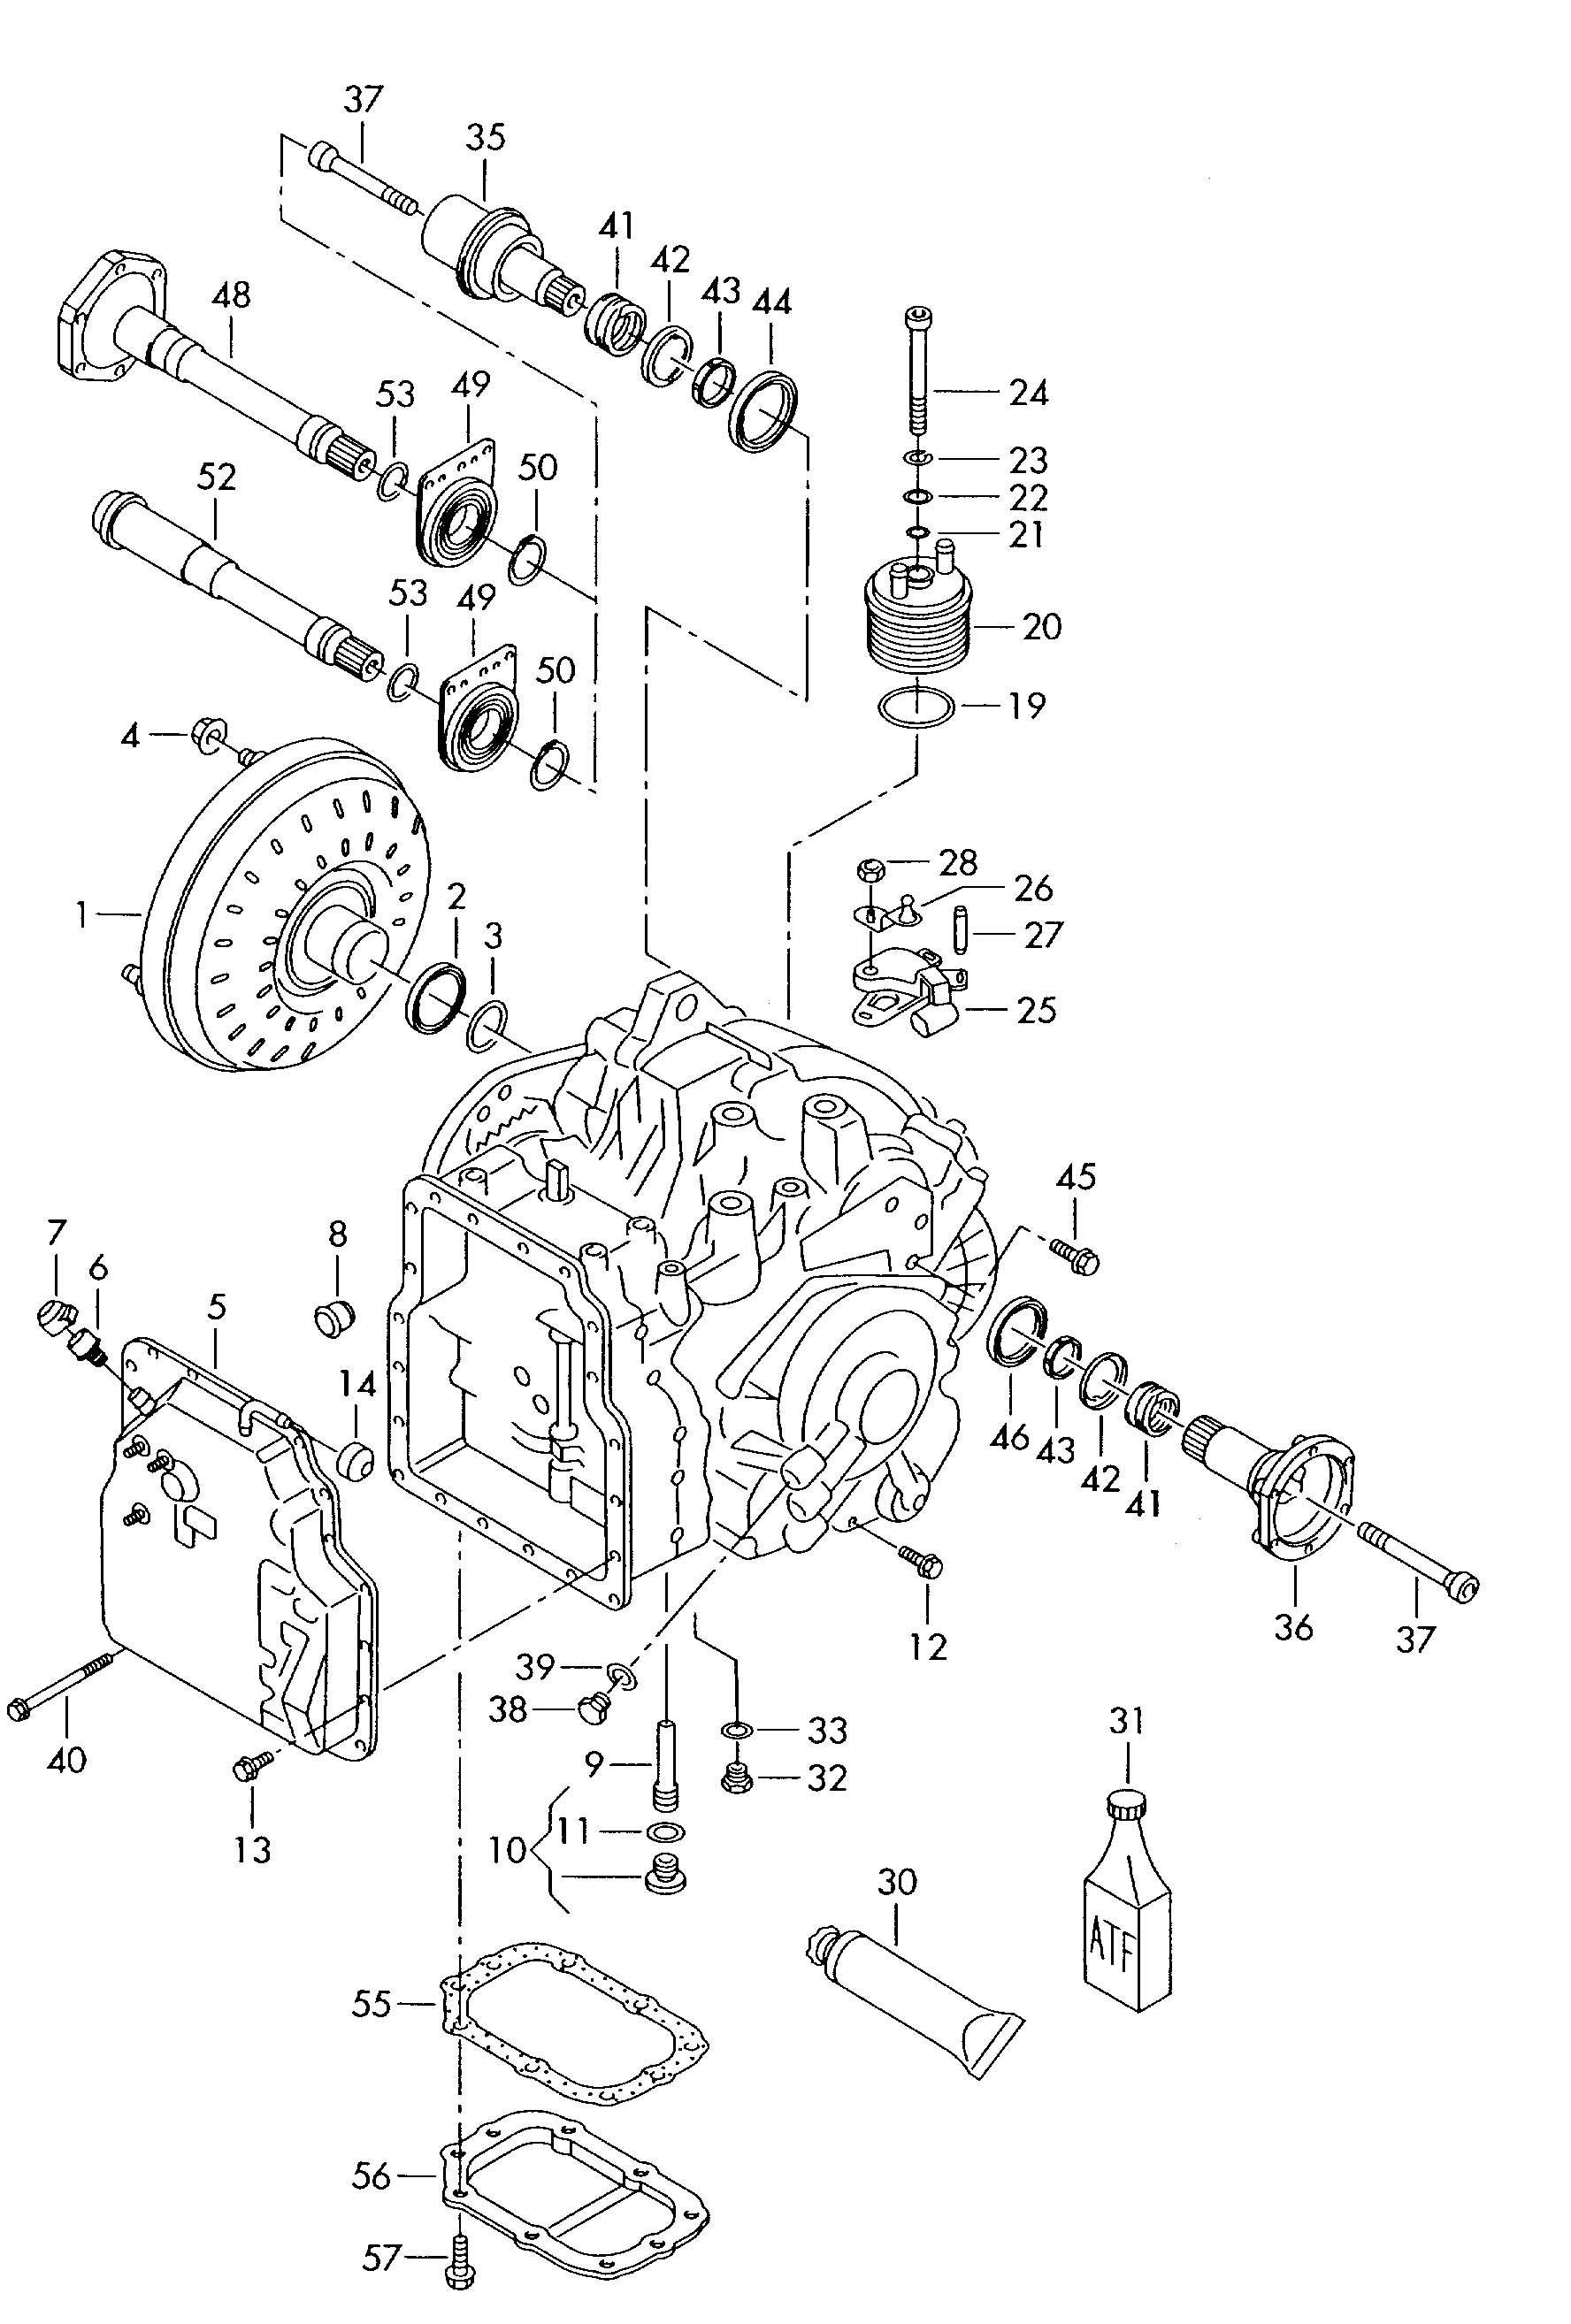 Volkswagen 01m Transmission Parts Diagram. Volkswagen